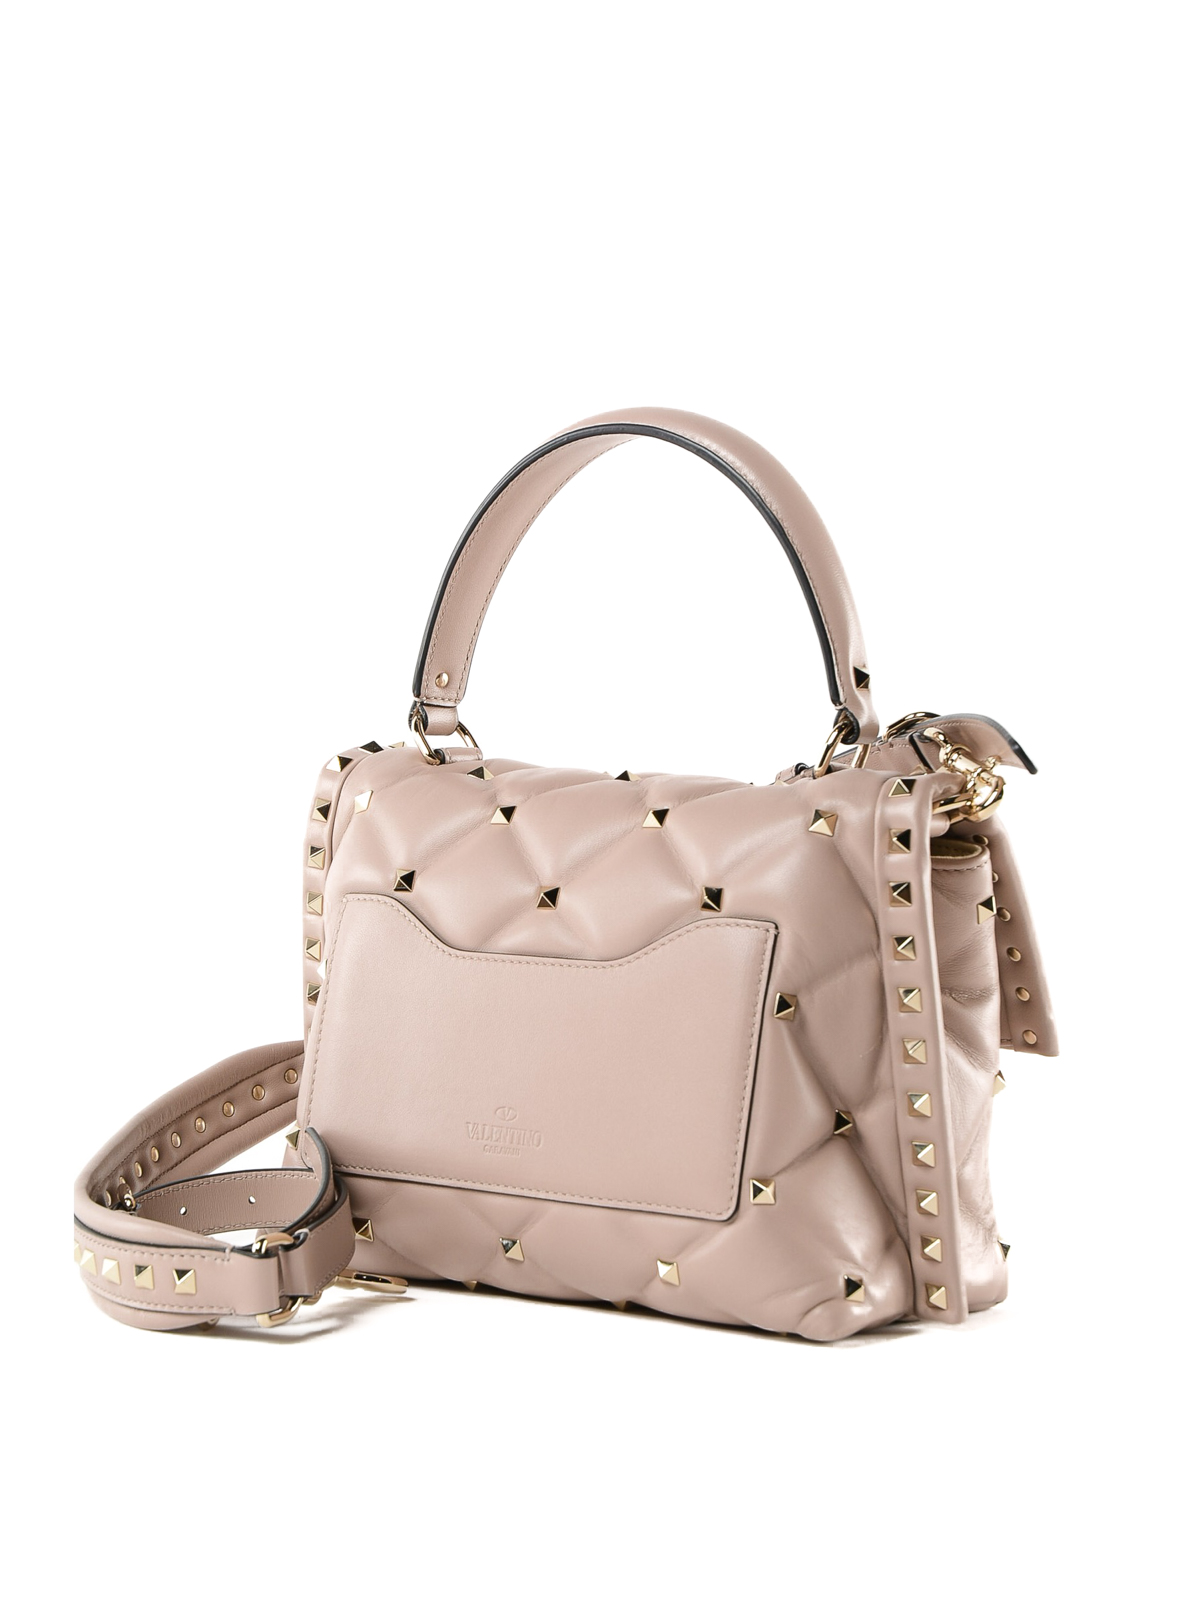 ba4a45692ab5 iKRIX VALENTINO GARAVANI  bowling bags - Candystud quilted calfskin small  bag